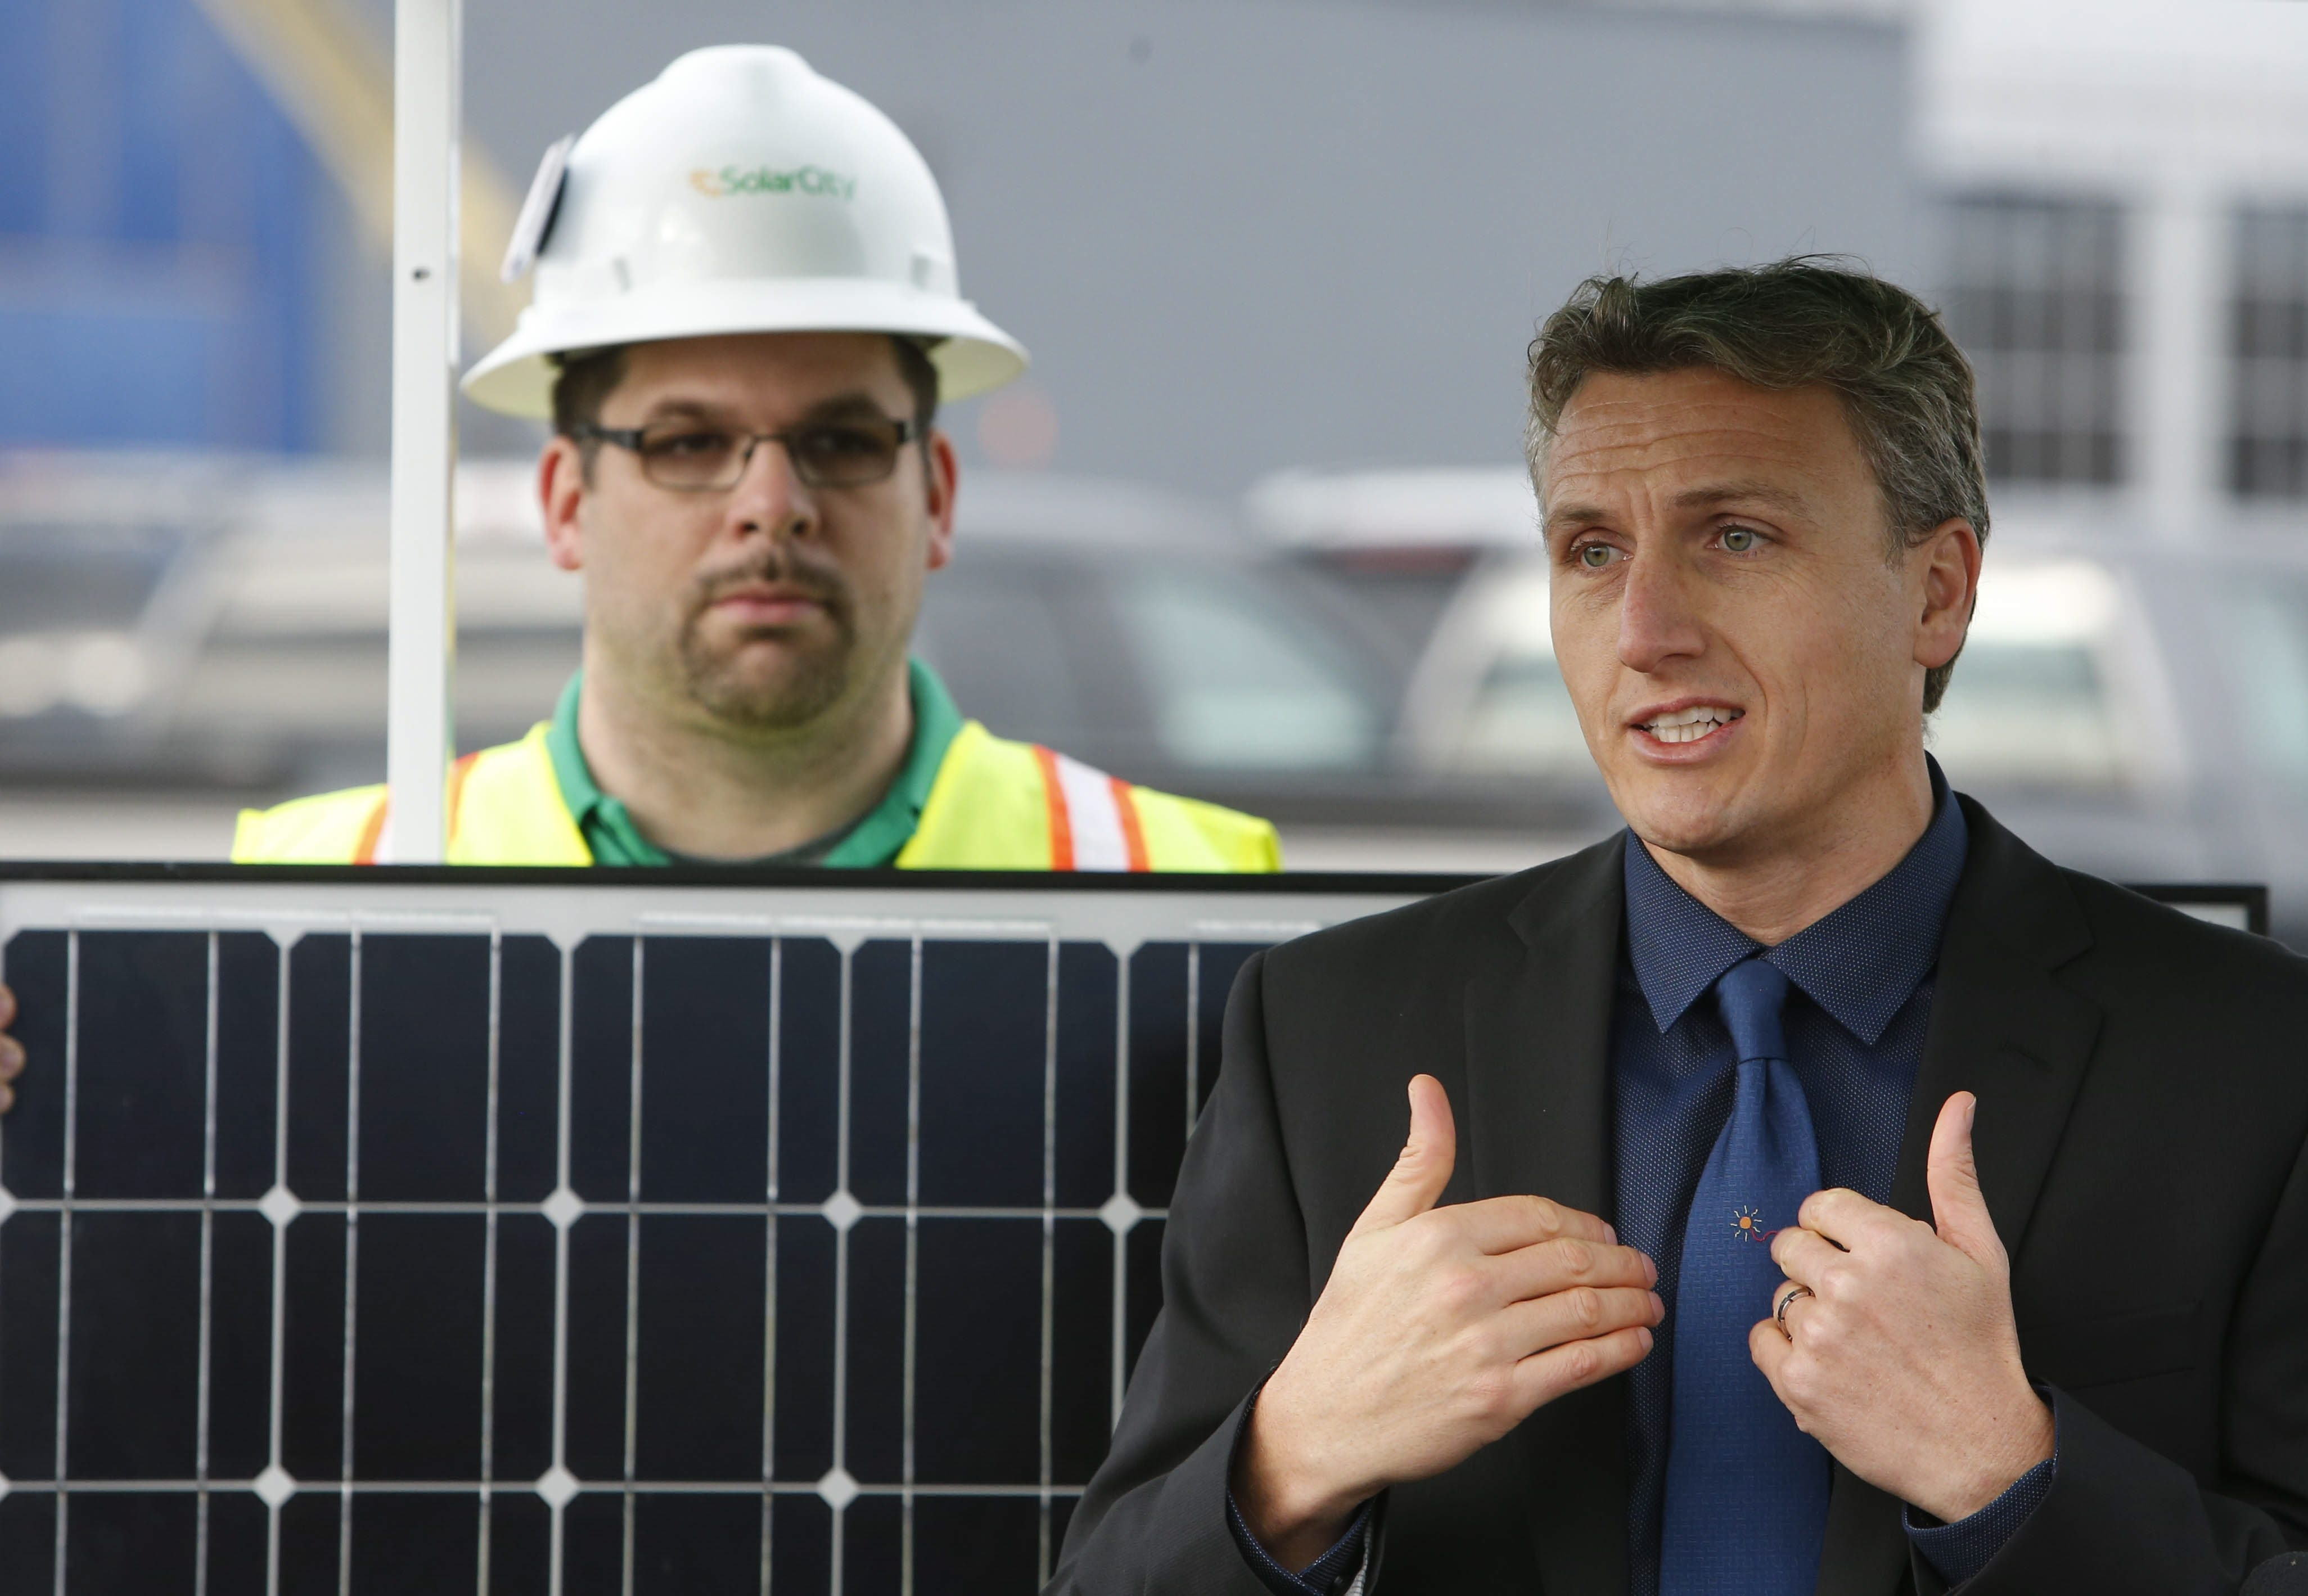 Solar City CEO Lyndon Rive, right, talks about the effects of the recent extension of the solar energy tax credit during a press conference with U.S. Senator Charles Schumer, not pictured, outside the Solar City facility under construction at RiverBend, Tuesday, Dec. 22, 2015.  (Derek Gee/Buffalo News)